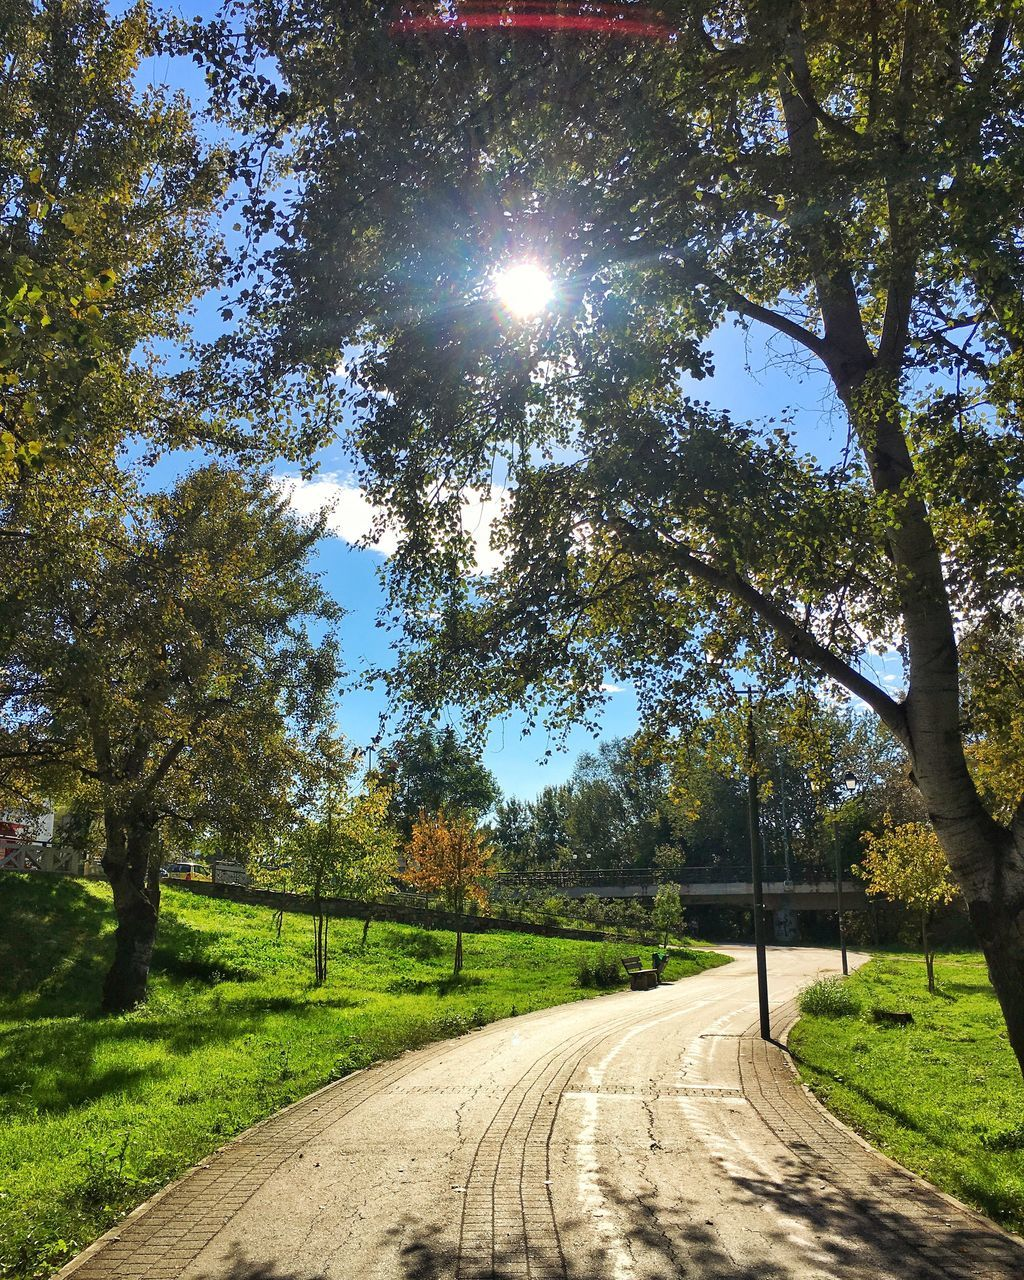 tree, road, the way forward, sunlight, transportation, sunbeam, day, lens flare, nature, no people, sun, tranquil scene, outdoors, scenics, tranquility, growth, landscape, beauty in nature, sky